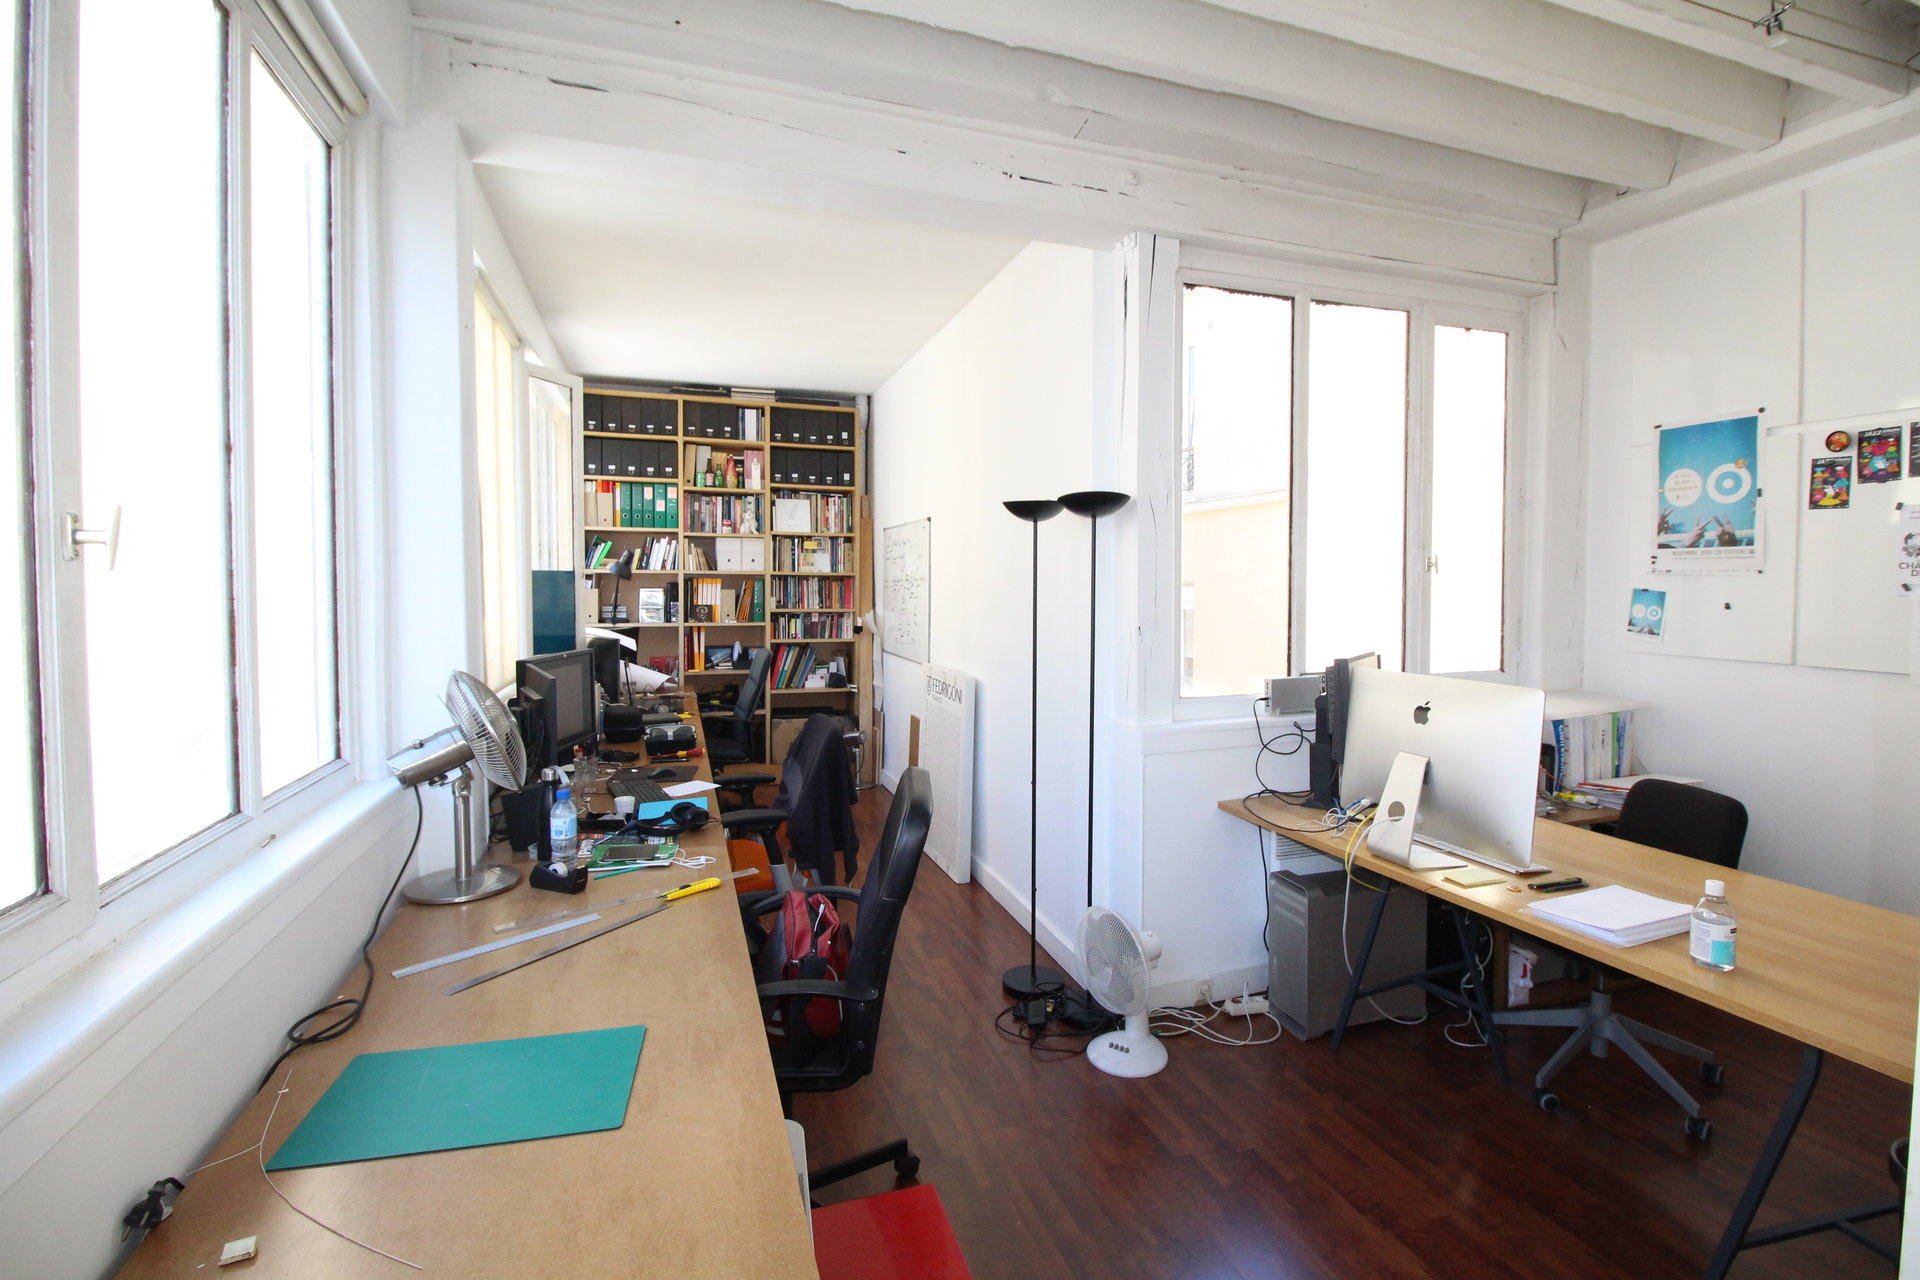 Location Bureau - Paris 11ème